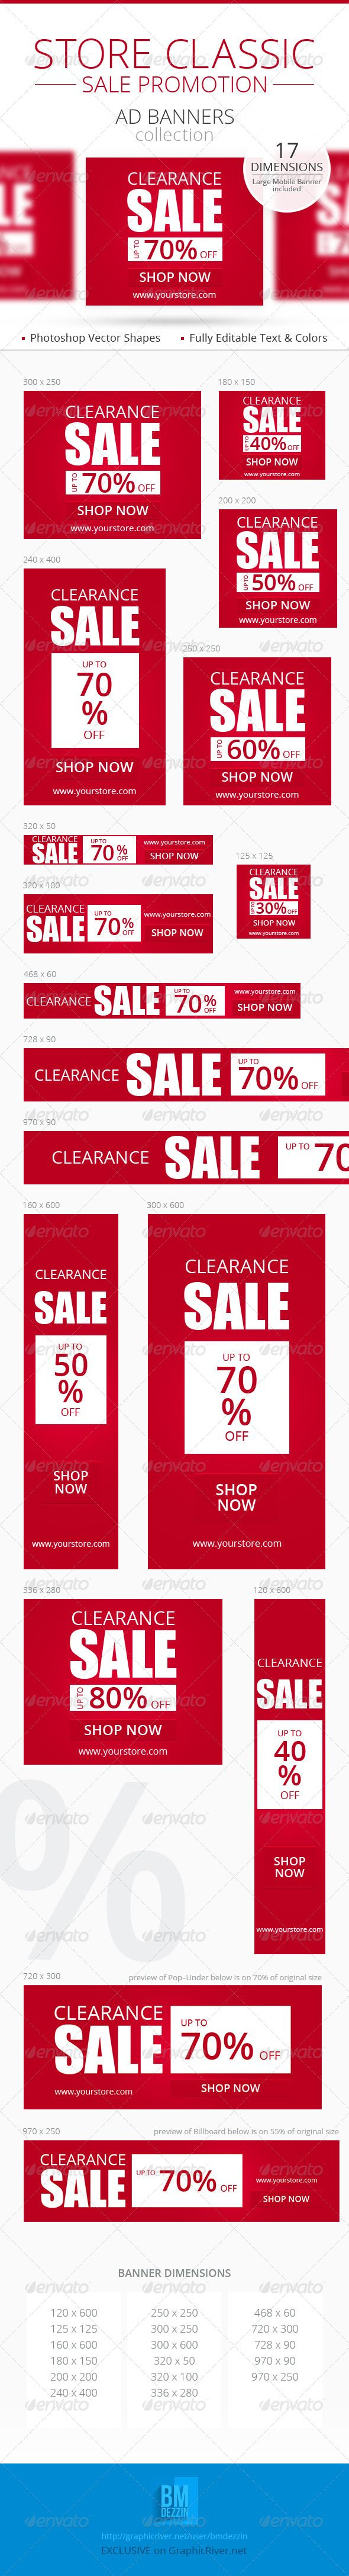 Store Classic Sale Promotion Web Ad Banners – Sales Promotion Template